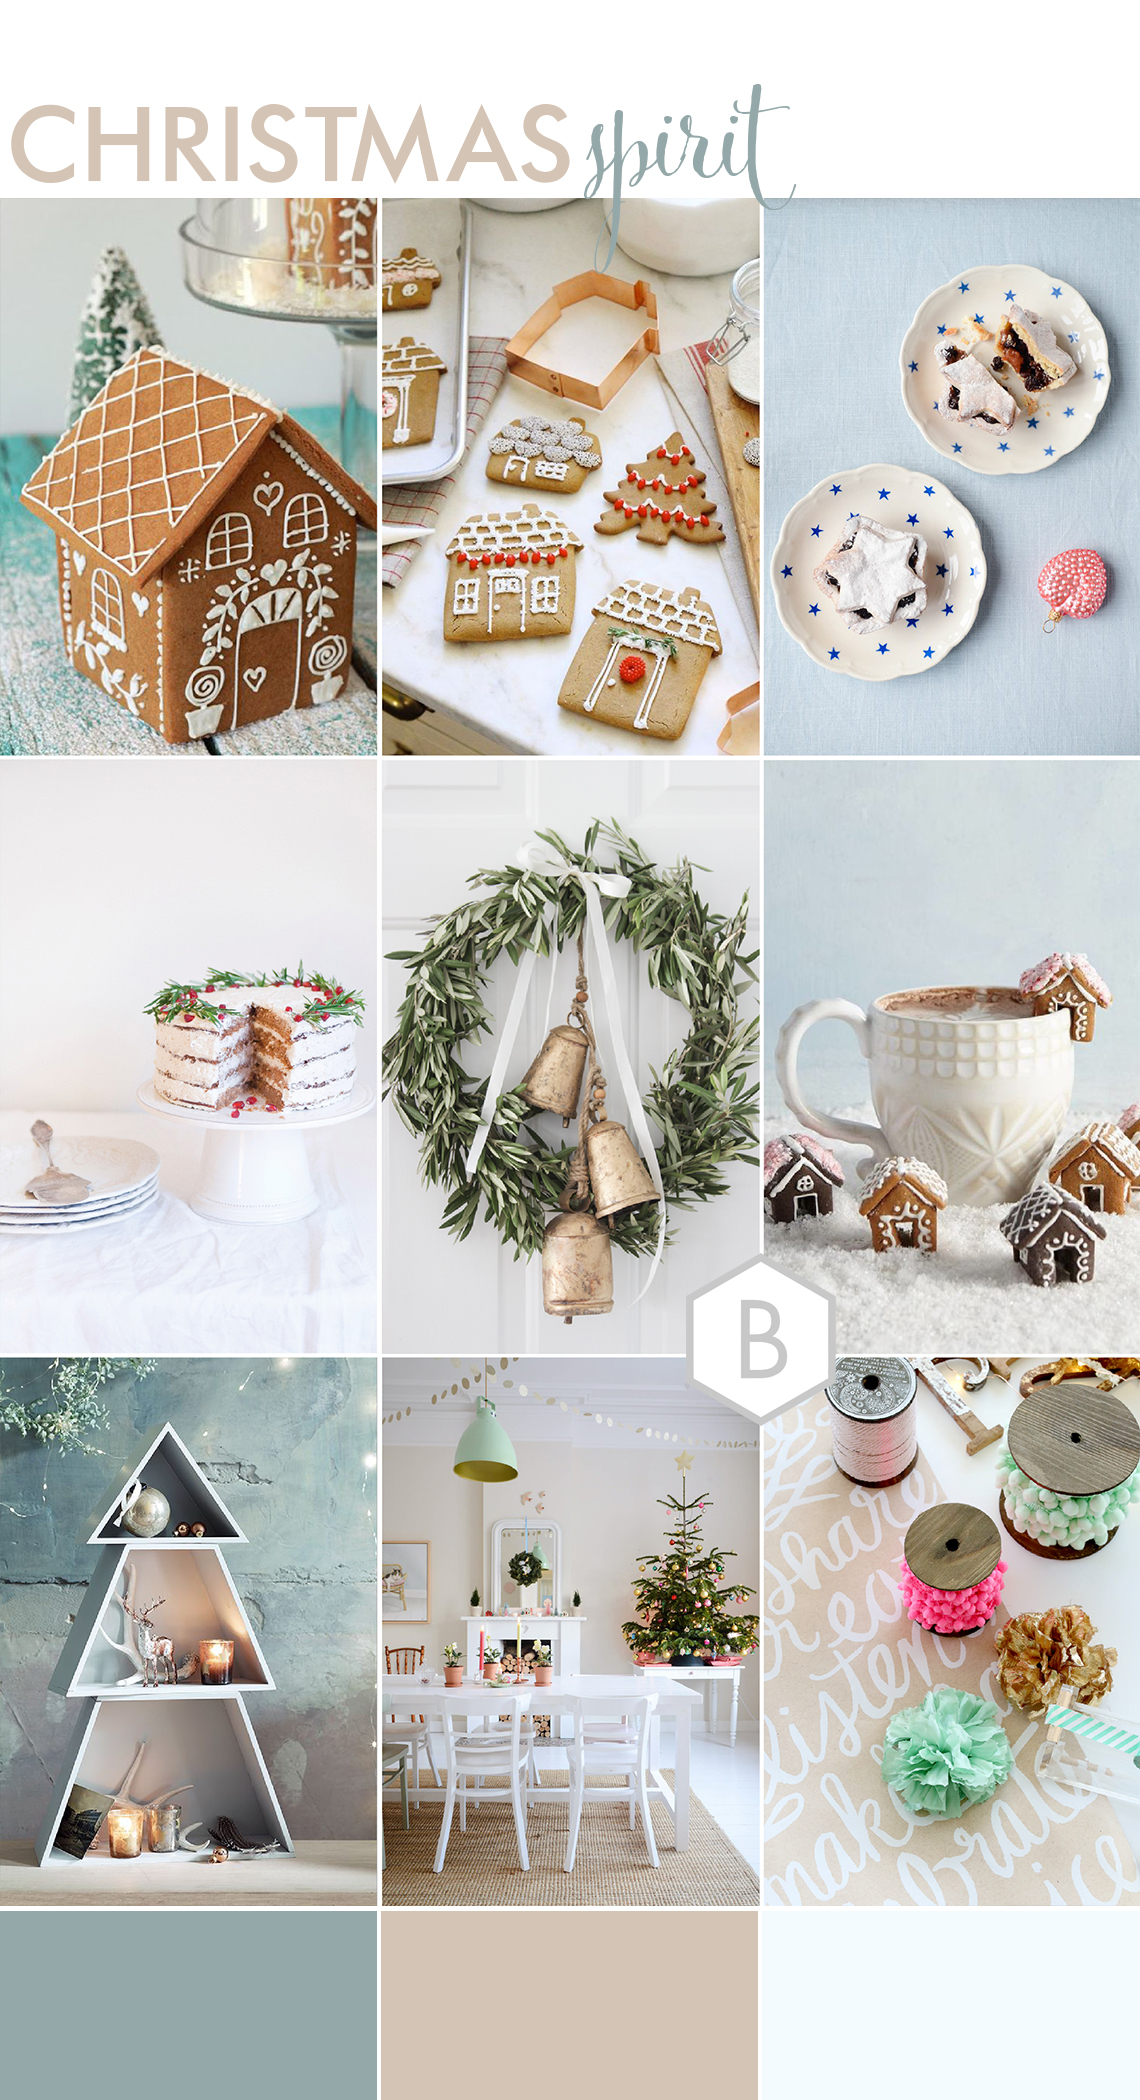 bloved-baby-blog-christmas-spirit-moodboard-by-catharine-noble